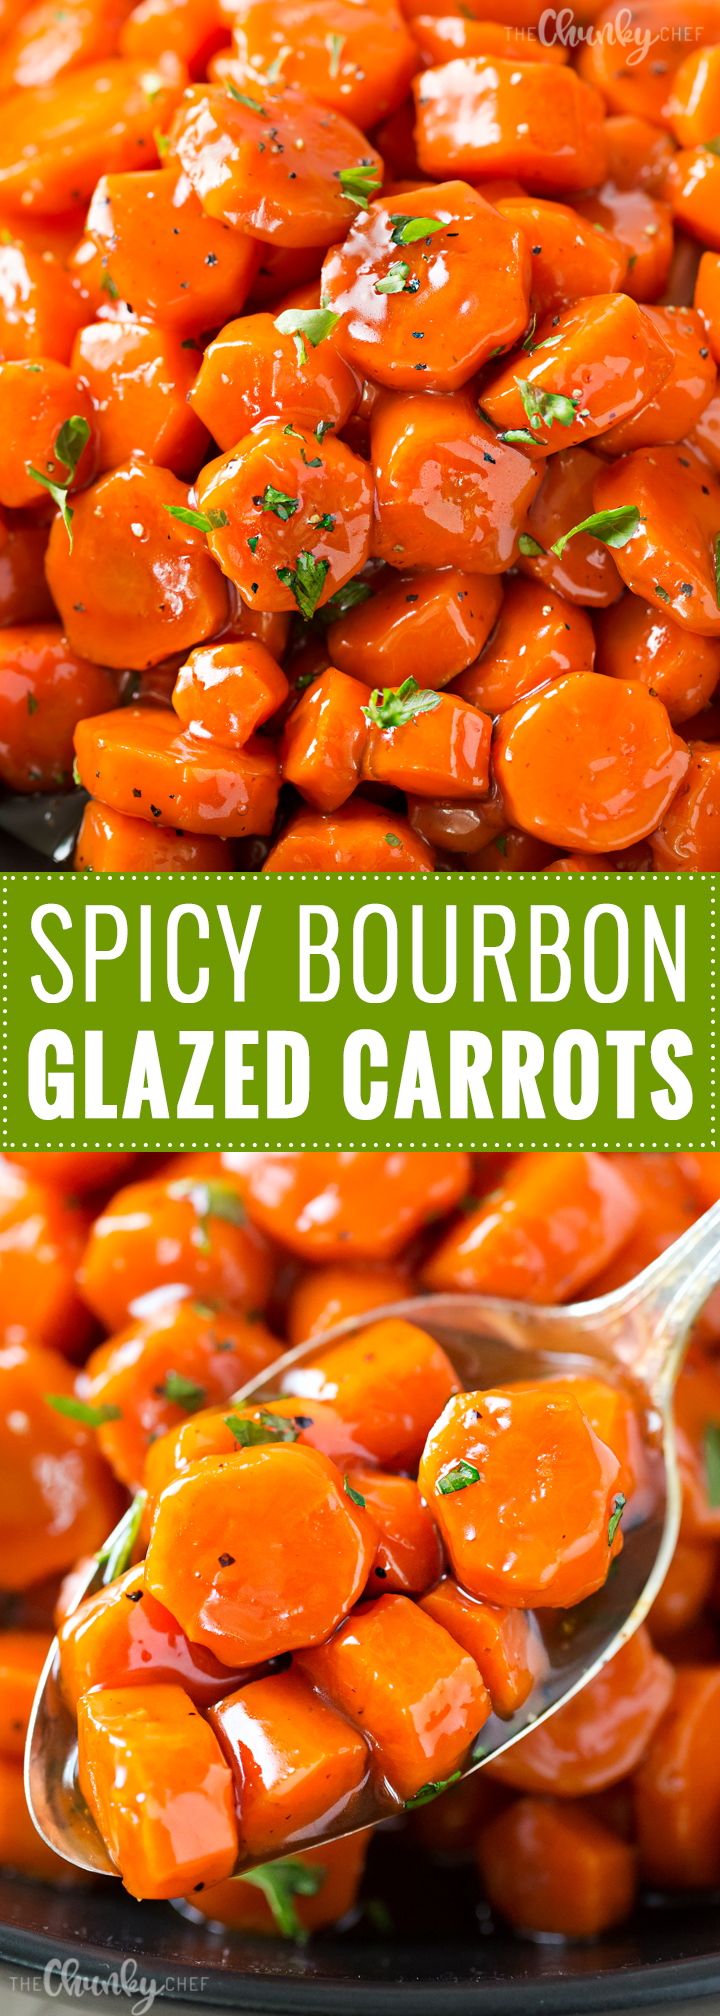 Spicy Bourbon Glazed Carrots – The Chunky Chef | My Meals are on ...